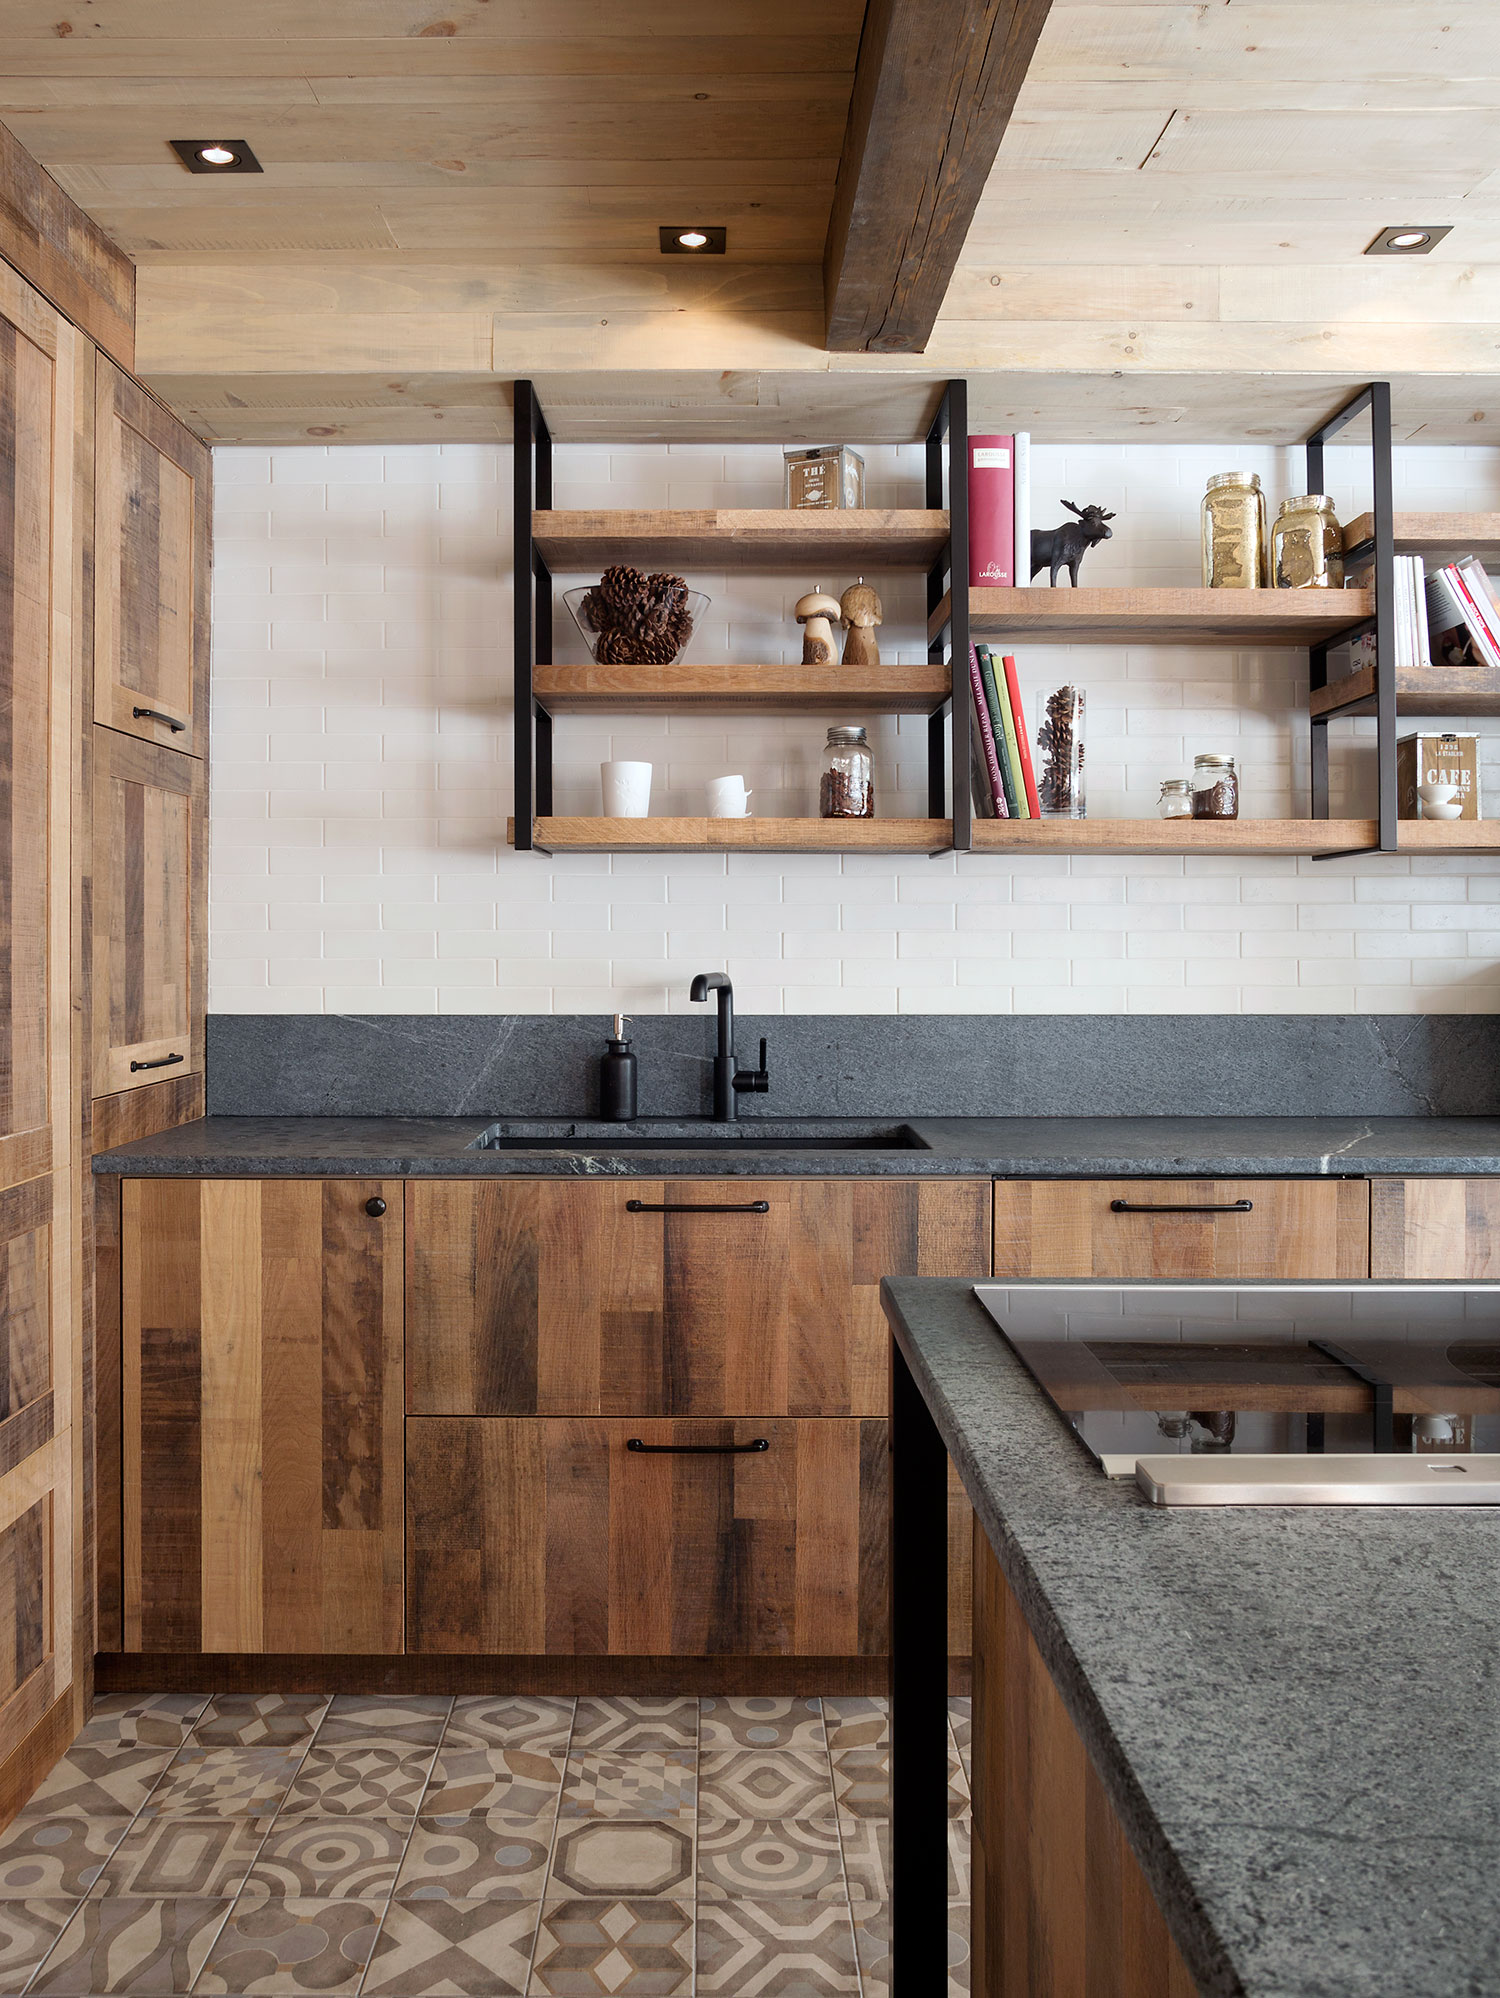 An Urban Rustic Kitchen For A Chef